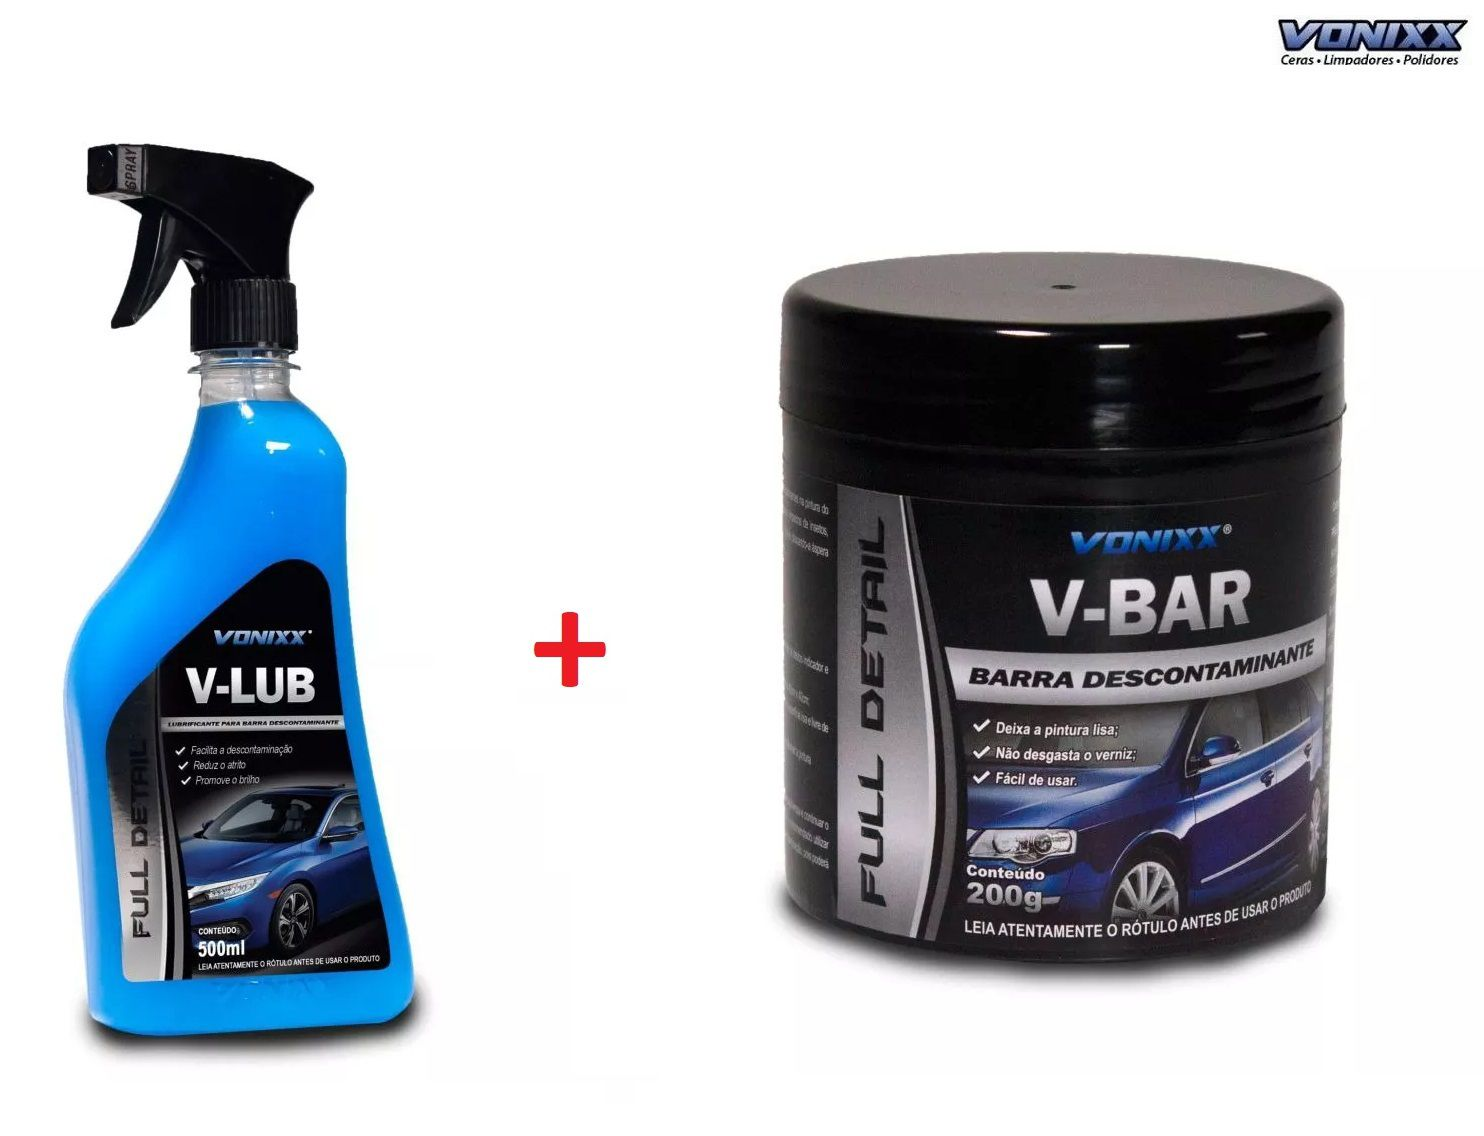 V-bar 200g Vonixx Clay Bar Descontaminante Superficie + V Lub 500 ml